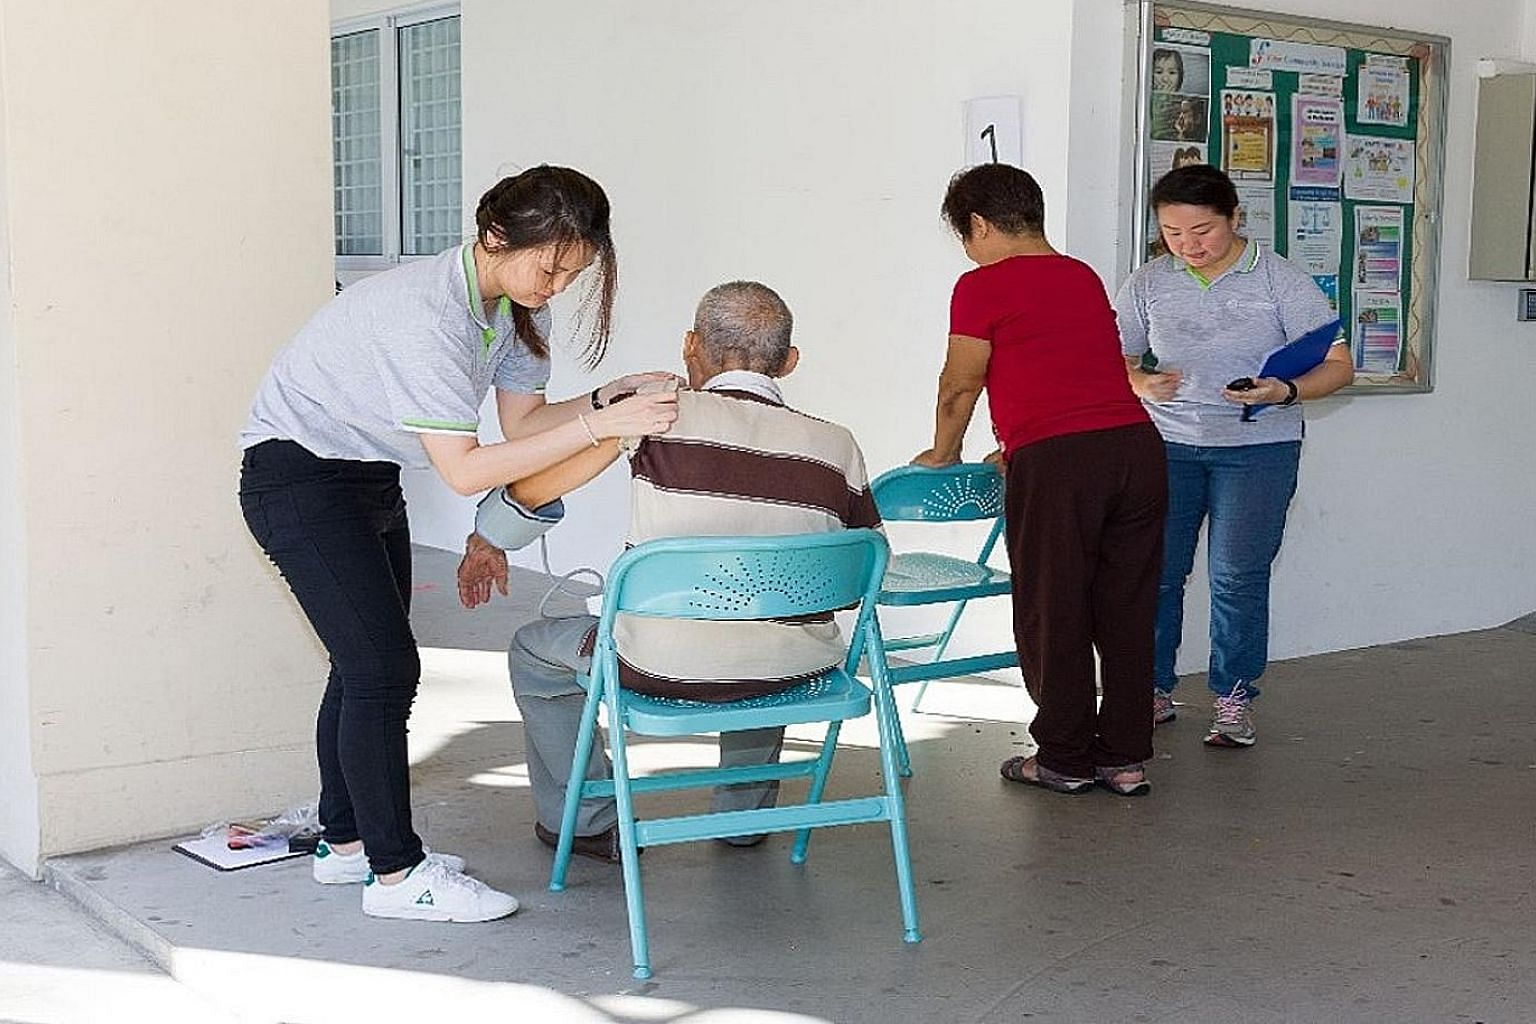 Staff from the Geriatric Education and Research Institute conduct blood pressure checks prior to carrying out a simple exercise session for older adults.